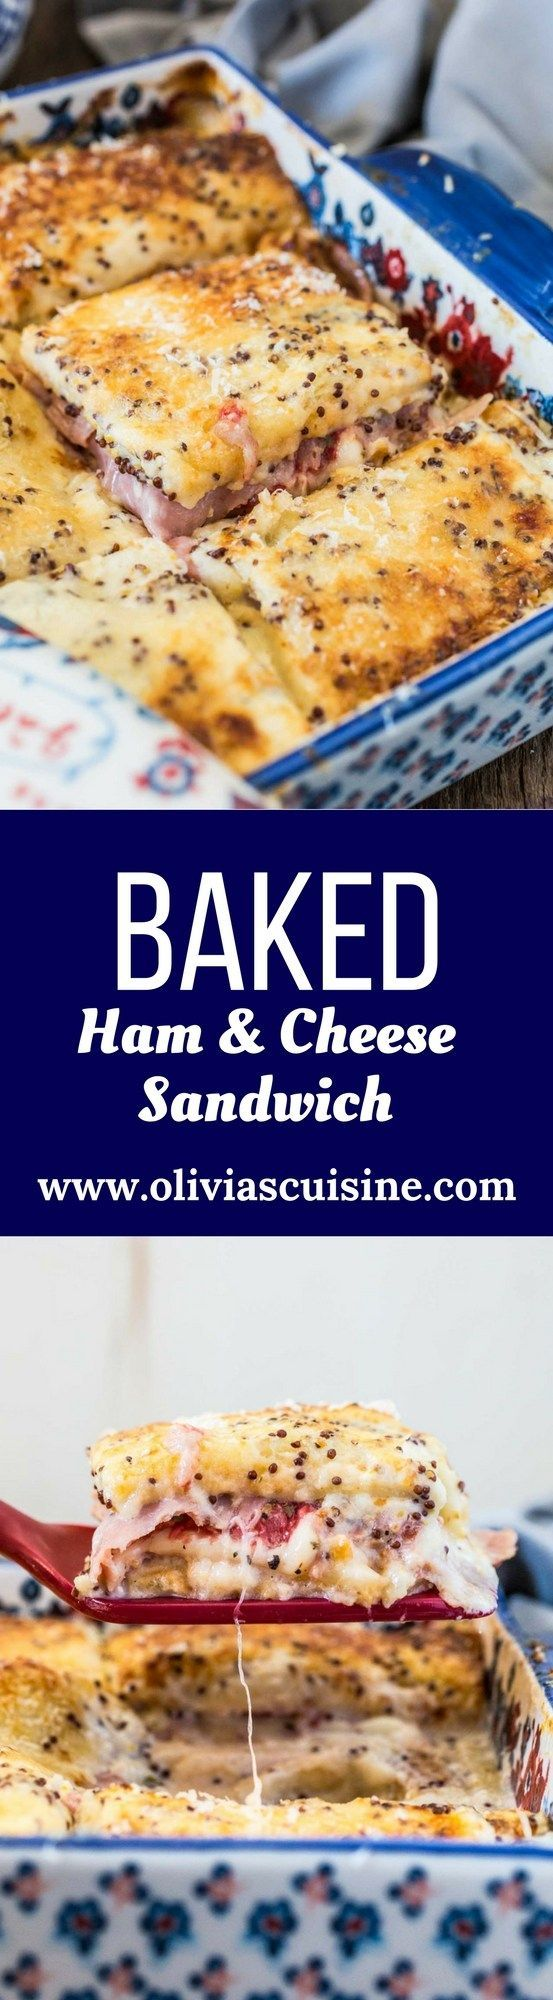 Brazilian Baked Ham and Cheese Sandwich | http://www.oliviascuisine.com | Who can resist a bubbly Baked Ham and Cheese Sandwich coming hot out of the oven? This Brazilian version takes it up a notch, because the sandwiches are covered with a delicious and creamy mustard-y white sauce. Simply to die for! @PepperidgeFarm #SandwichWithTheBest #ad